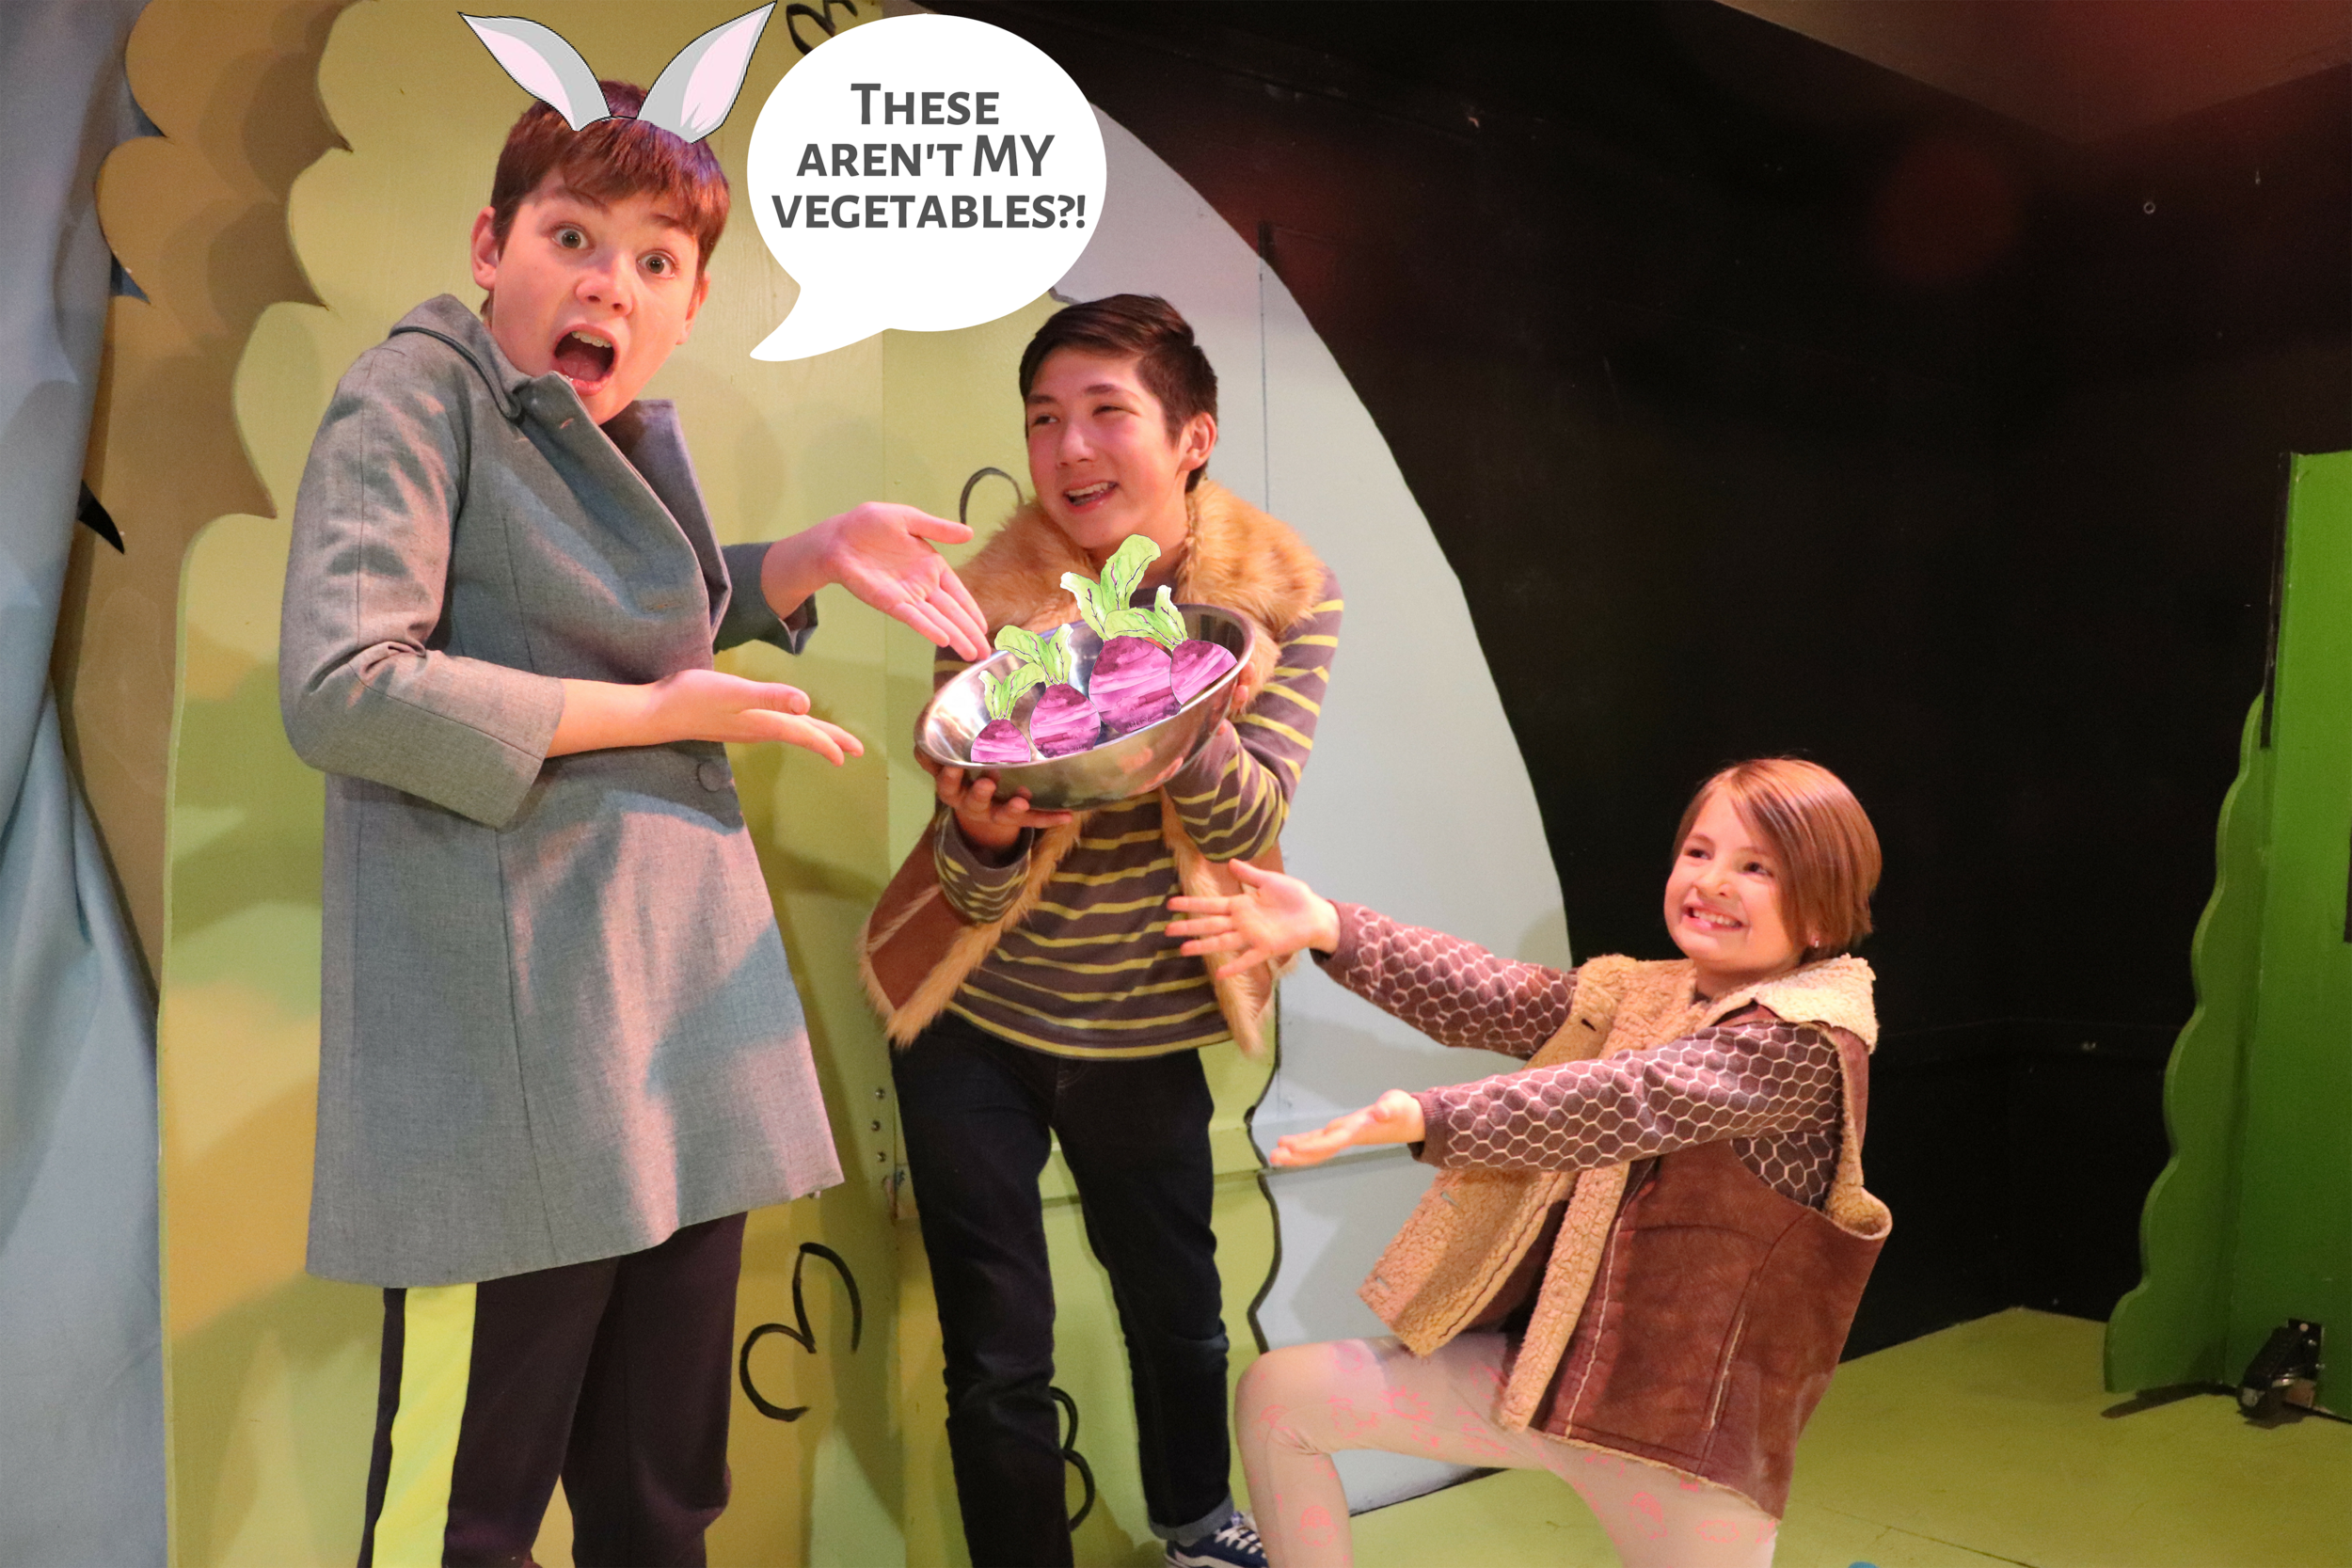 Experience a Theatre Show - Main stage performances engage and inspire groups and students through theatre for kids, by kids!